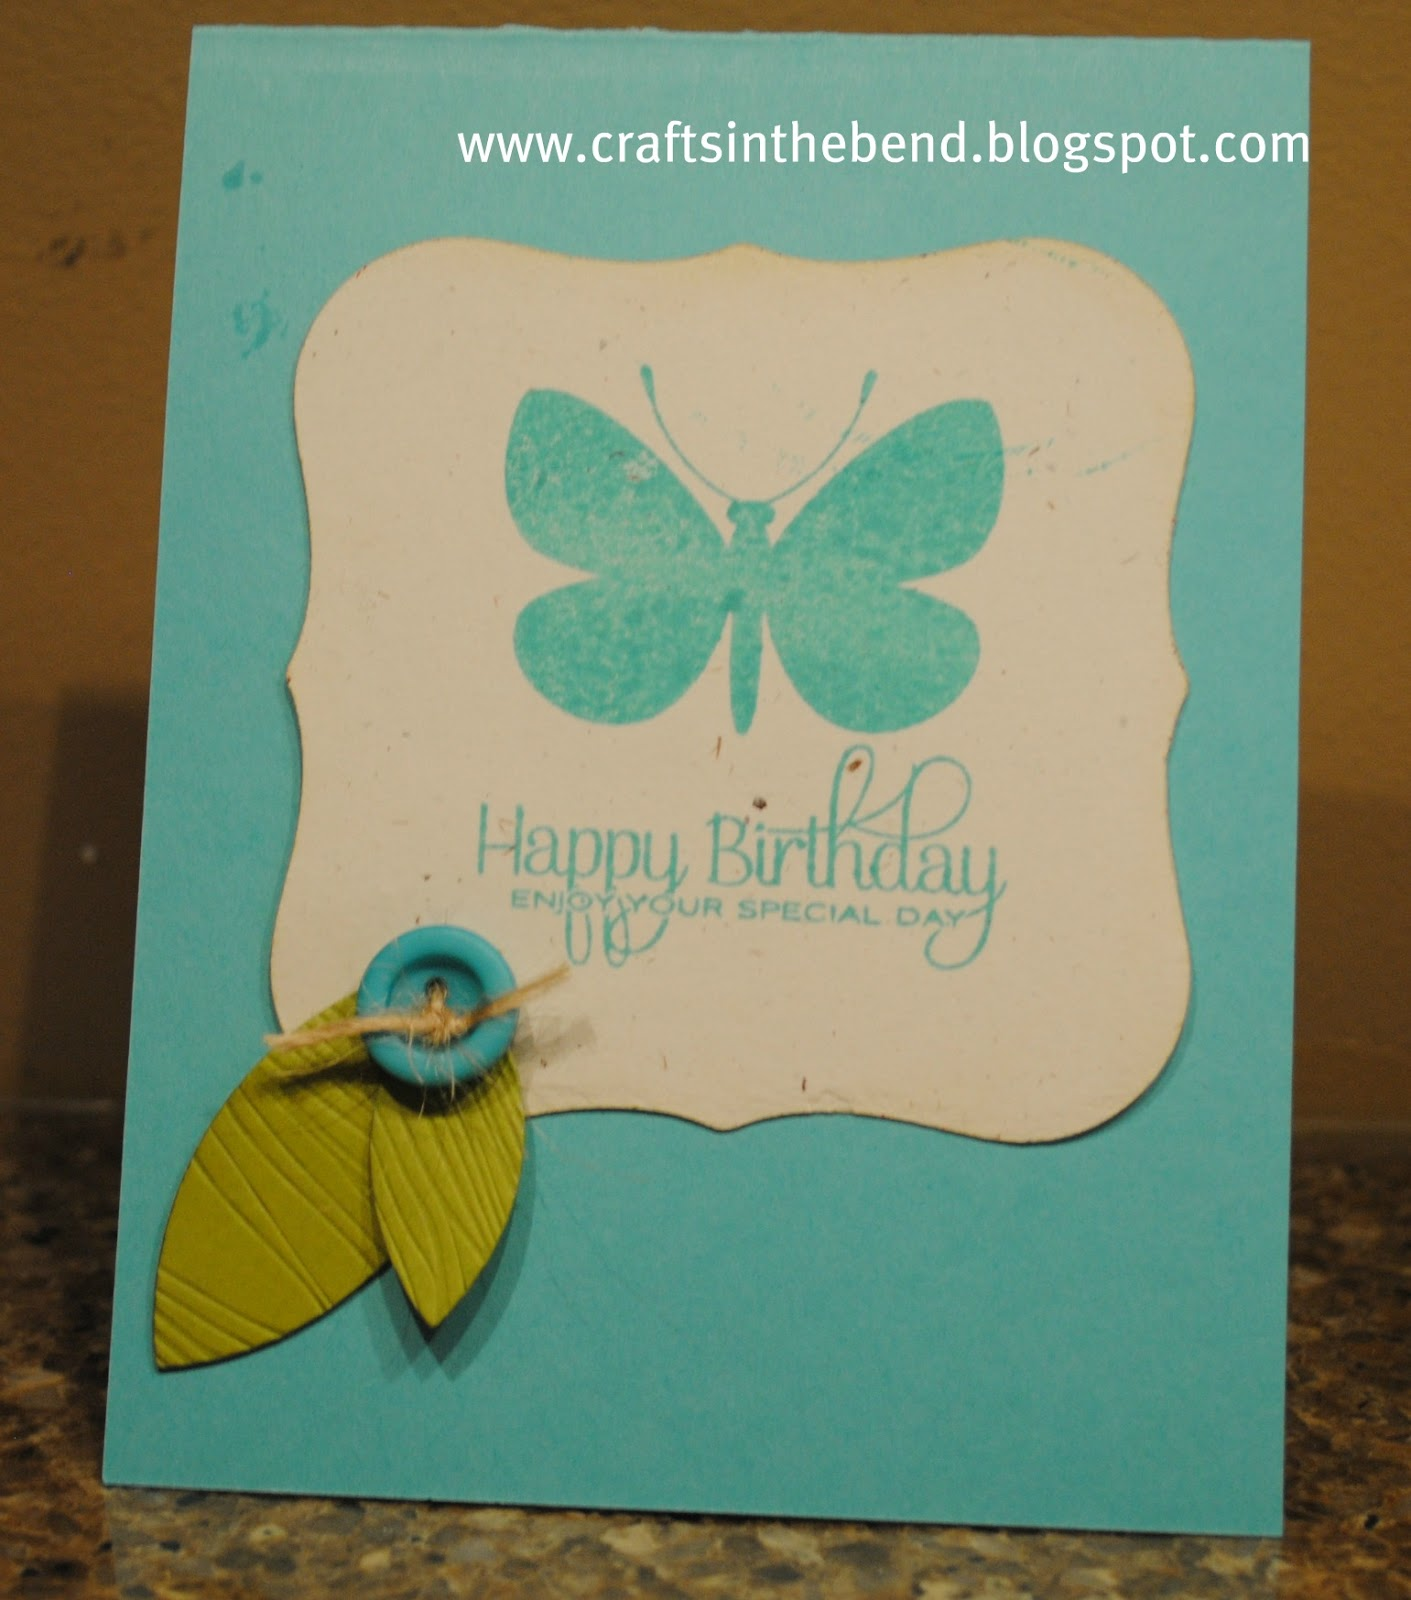 Paper Crafts In The Bend: Birthday Wishes {across The Miles}